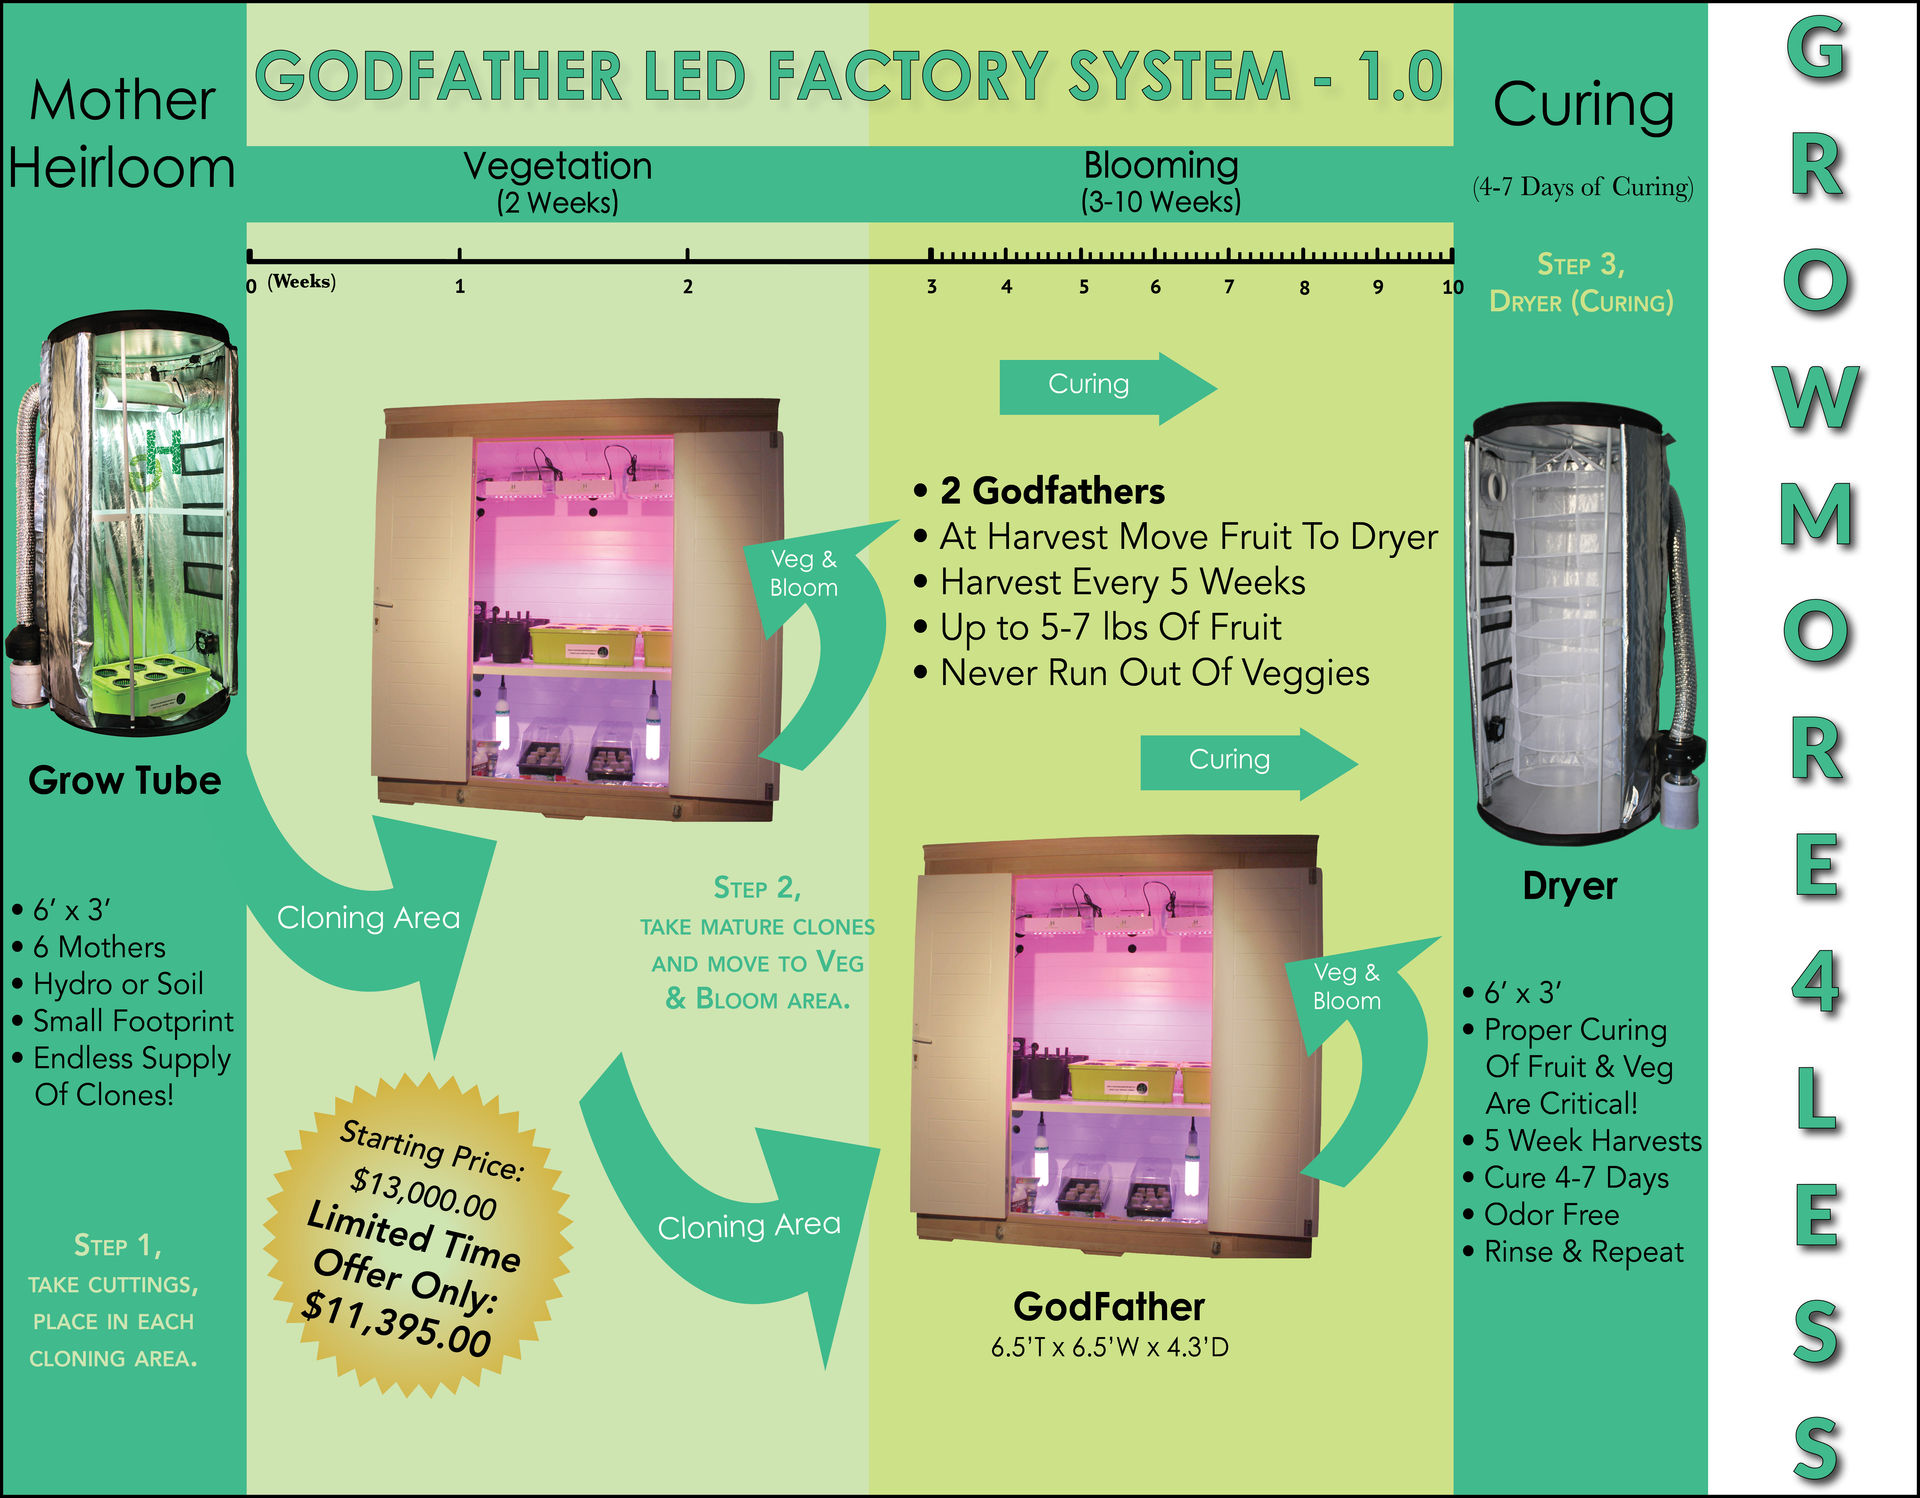 Introducing the God Father Factory System